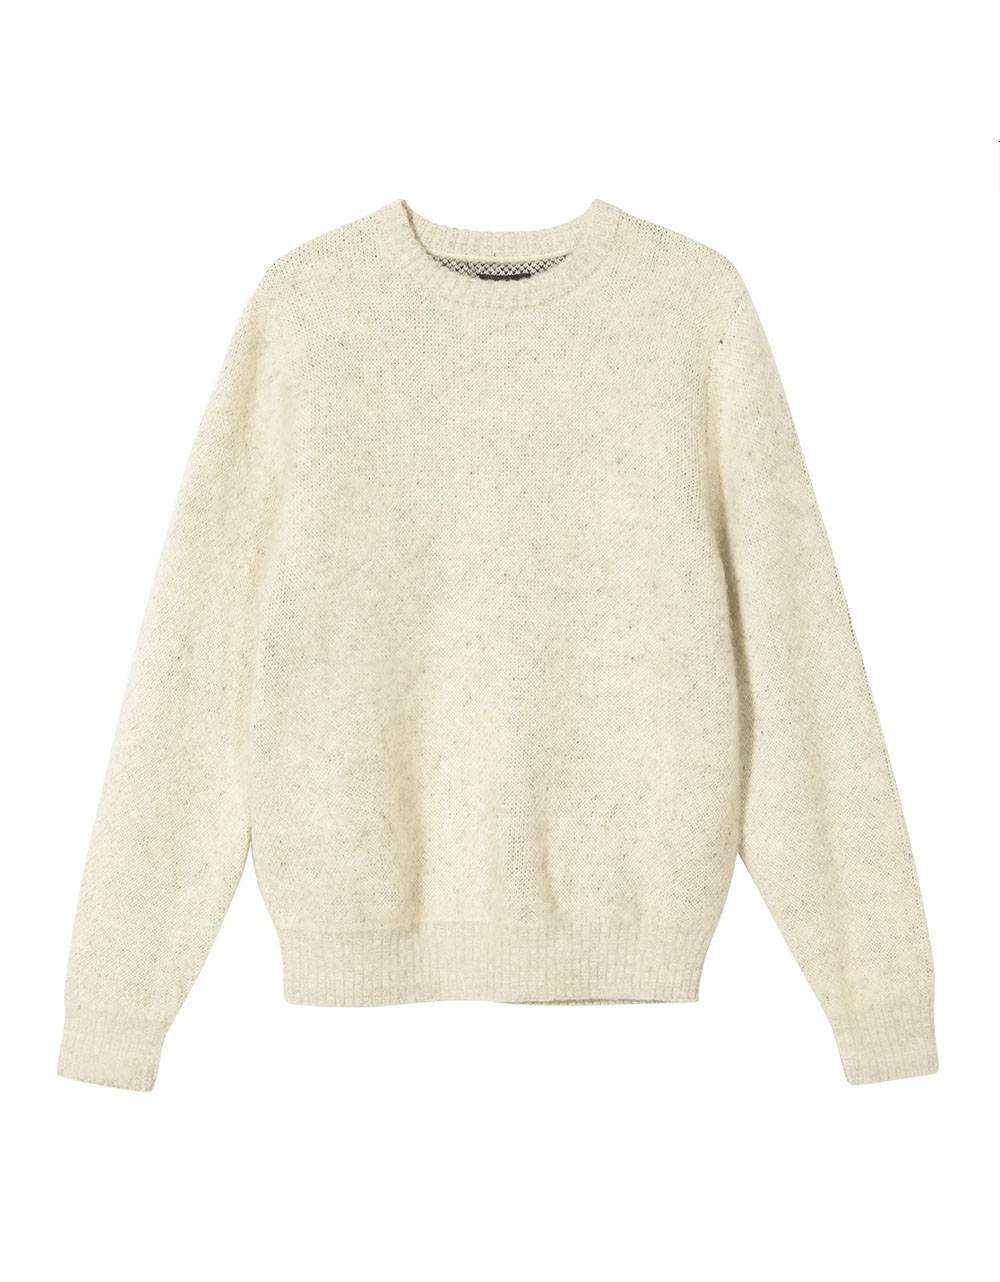 Stussy 8 ball heavy brushed mohair knit sweater - cream Stussy Knitwear 219,00 €